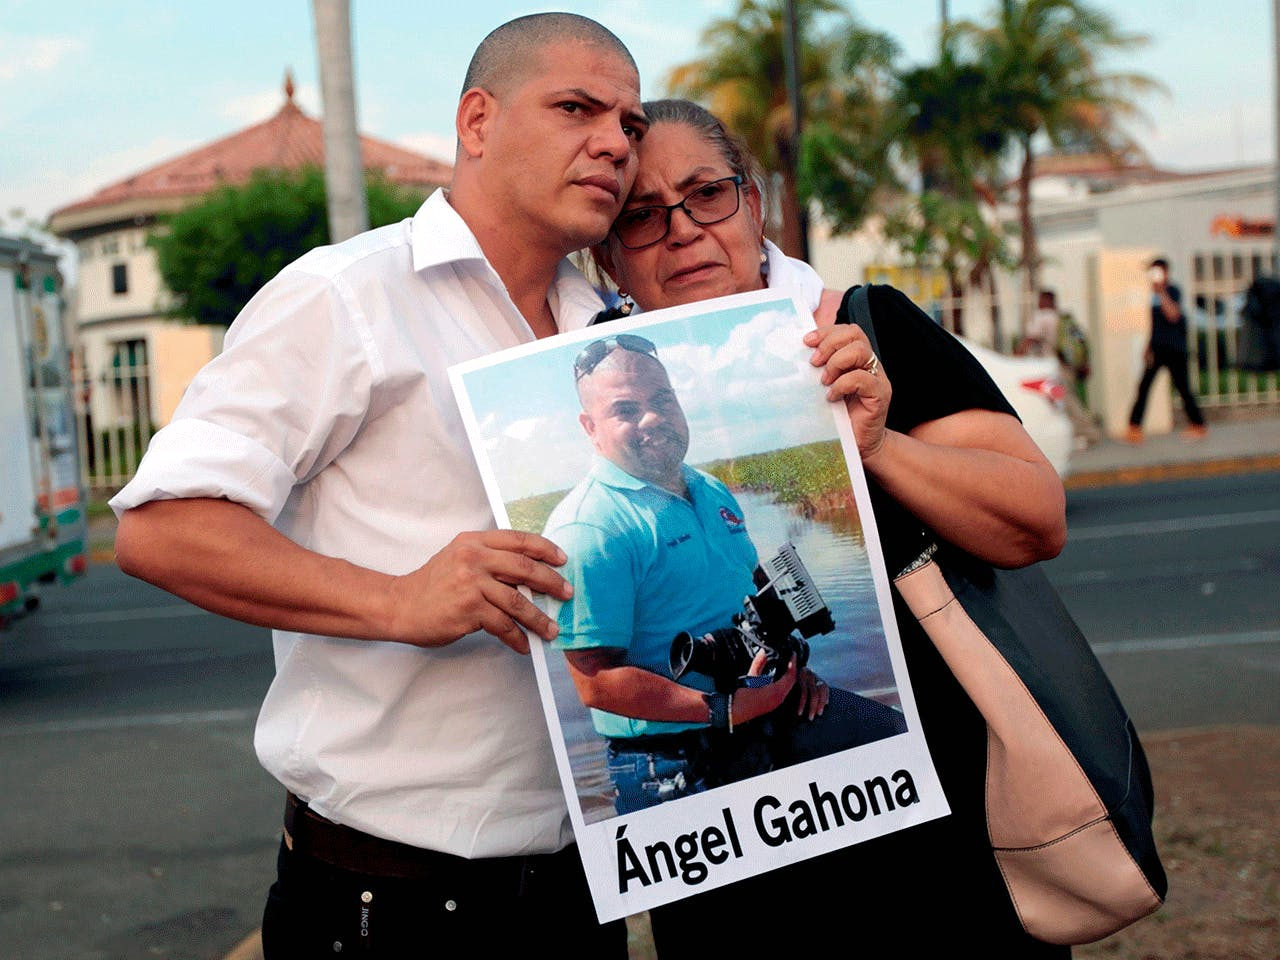 THE MOTHER AND BROTHER OF JOURNALIST ÁNGEL GAHONA—WHO DIED DURING THE PROTESTS FOLLOWING AN ATTEMPT BY PRESIDENT DANIEL ORTEGA TO REFORM THE NEAR-BANKRUPT SOCIAL SECURITY SYSTEM — TAKE PART IN A PROTEST AT THE RUBEN DARIO ROUNDABOUT IN MANAGUA, MAY 10, 2018